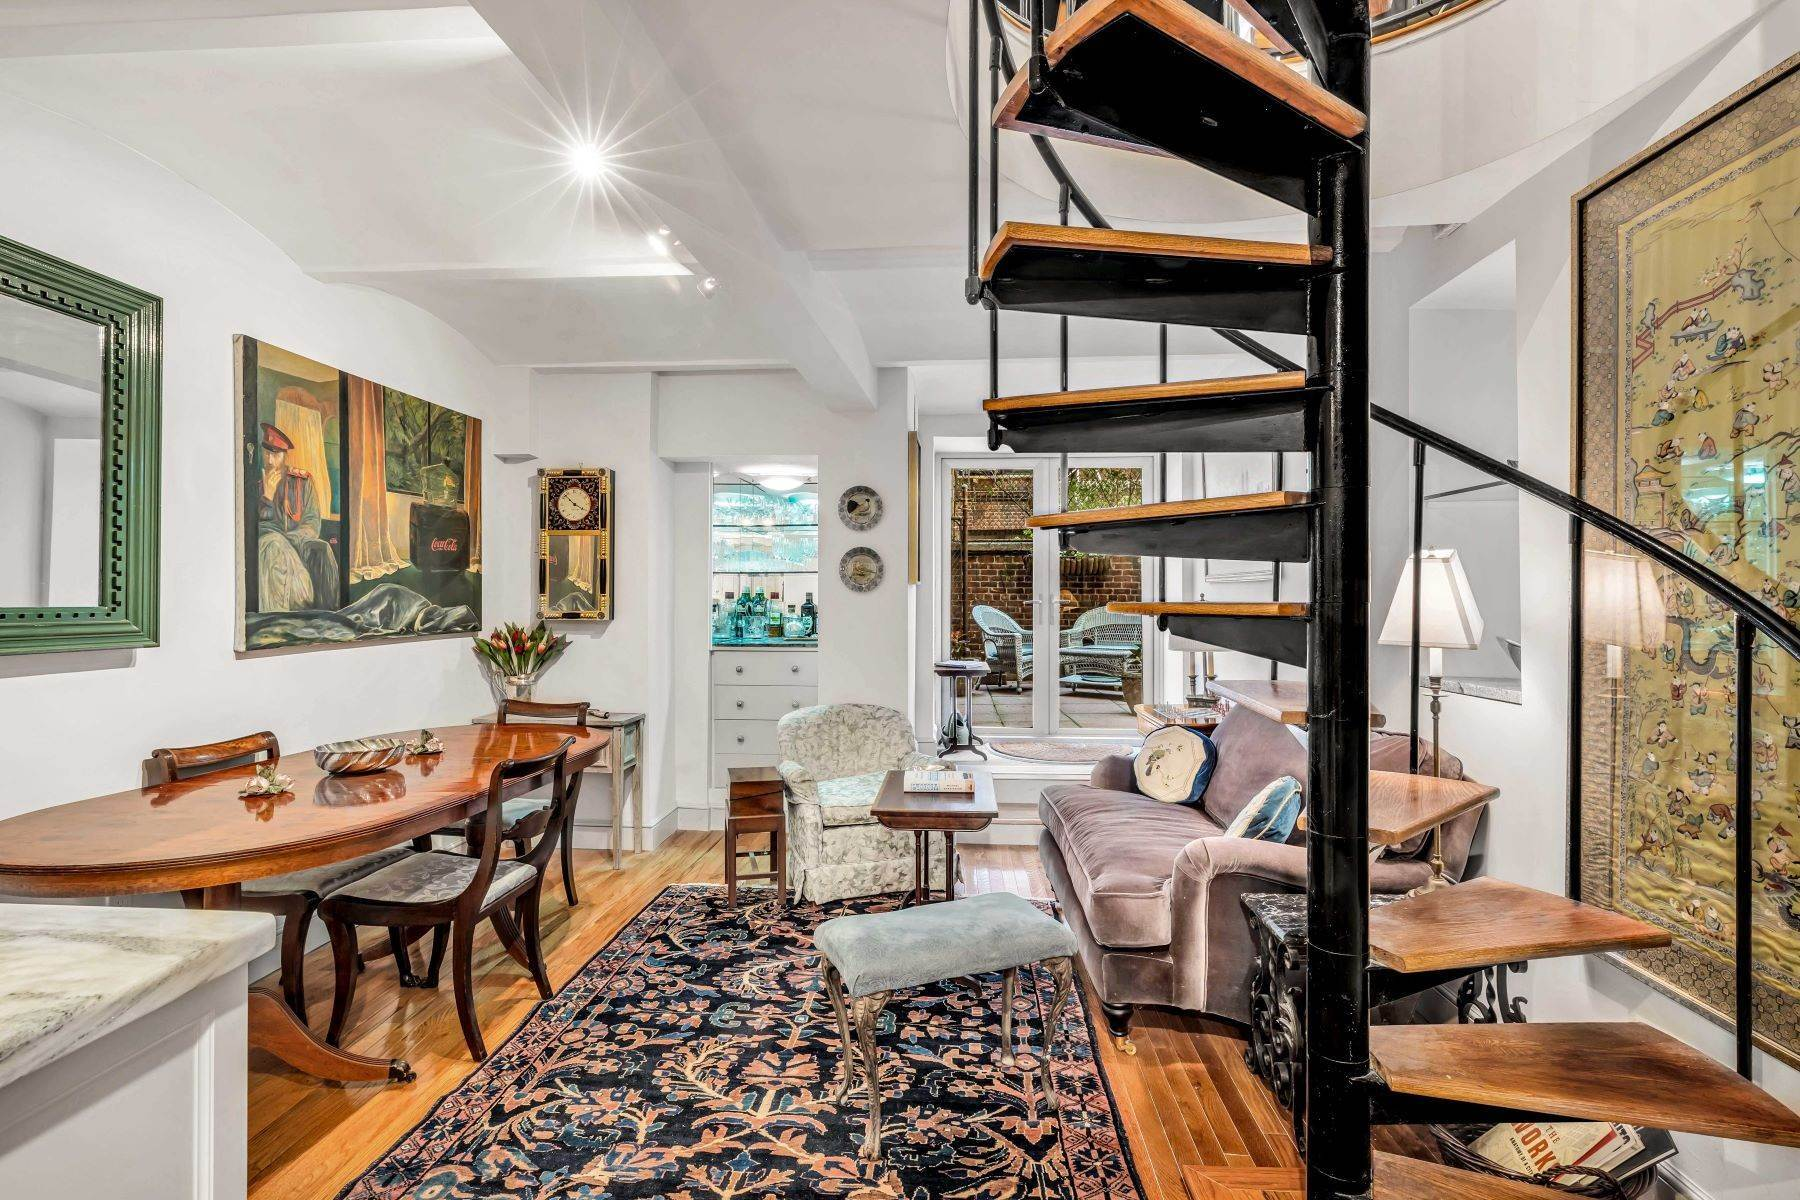 Co-op Properties for Sale at Renovated 2 bed 2 bath w/ Outdoor Space 20 East 88th Street, Apt 1F New York, New York 10128 United States